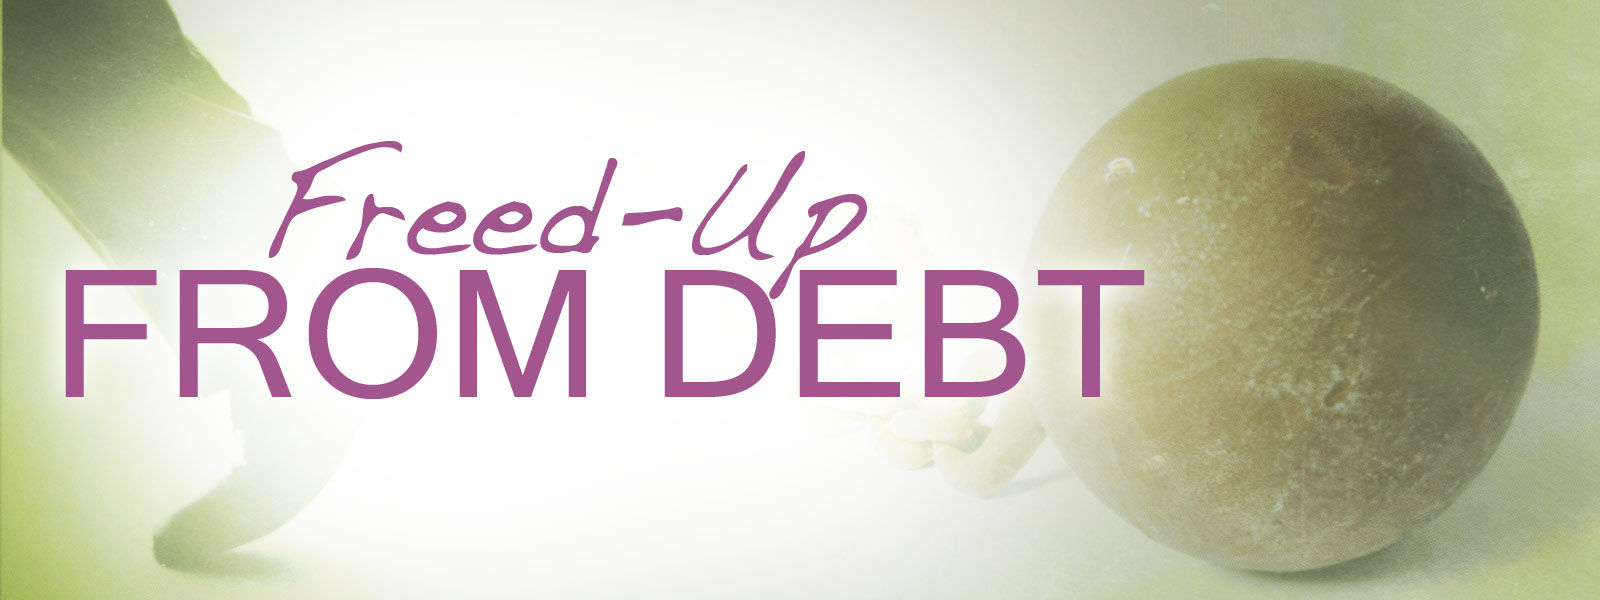 Freed-Up From Debt